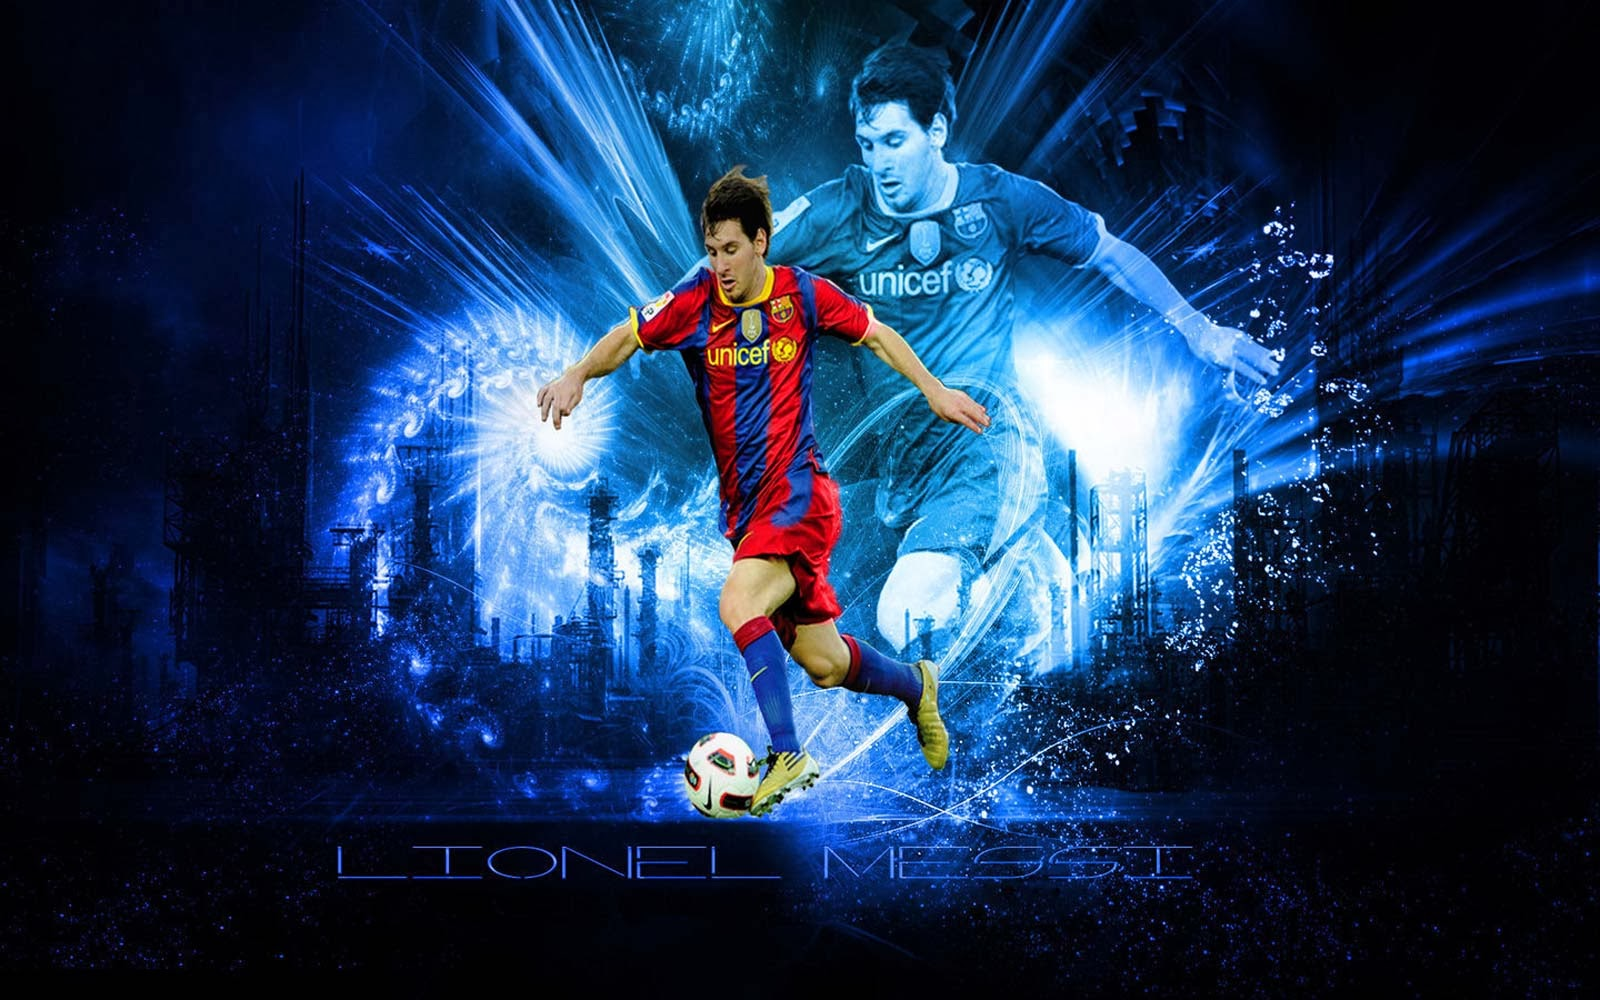 Lionel Messi Barcelona HD Wallpapers 2013-2014